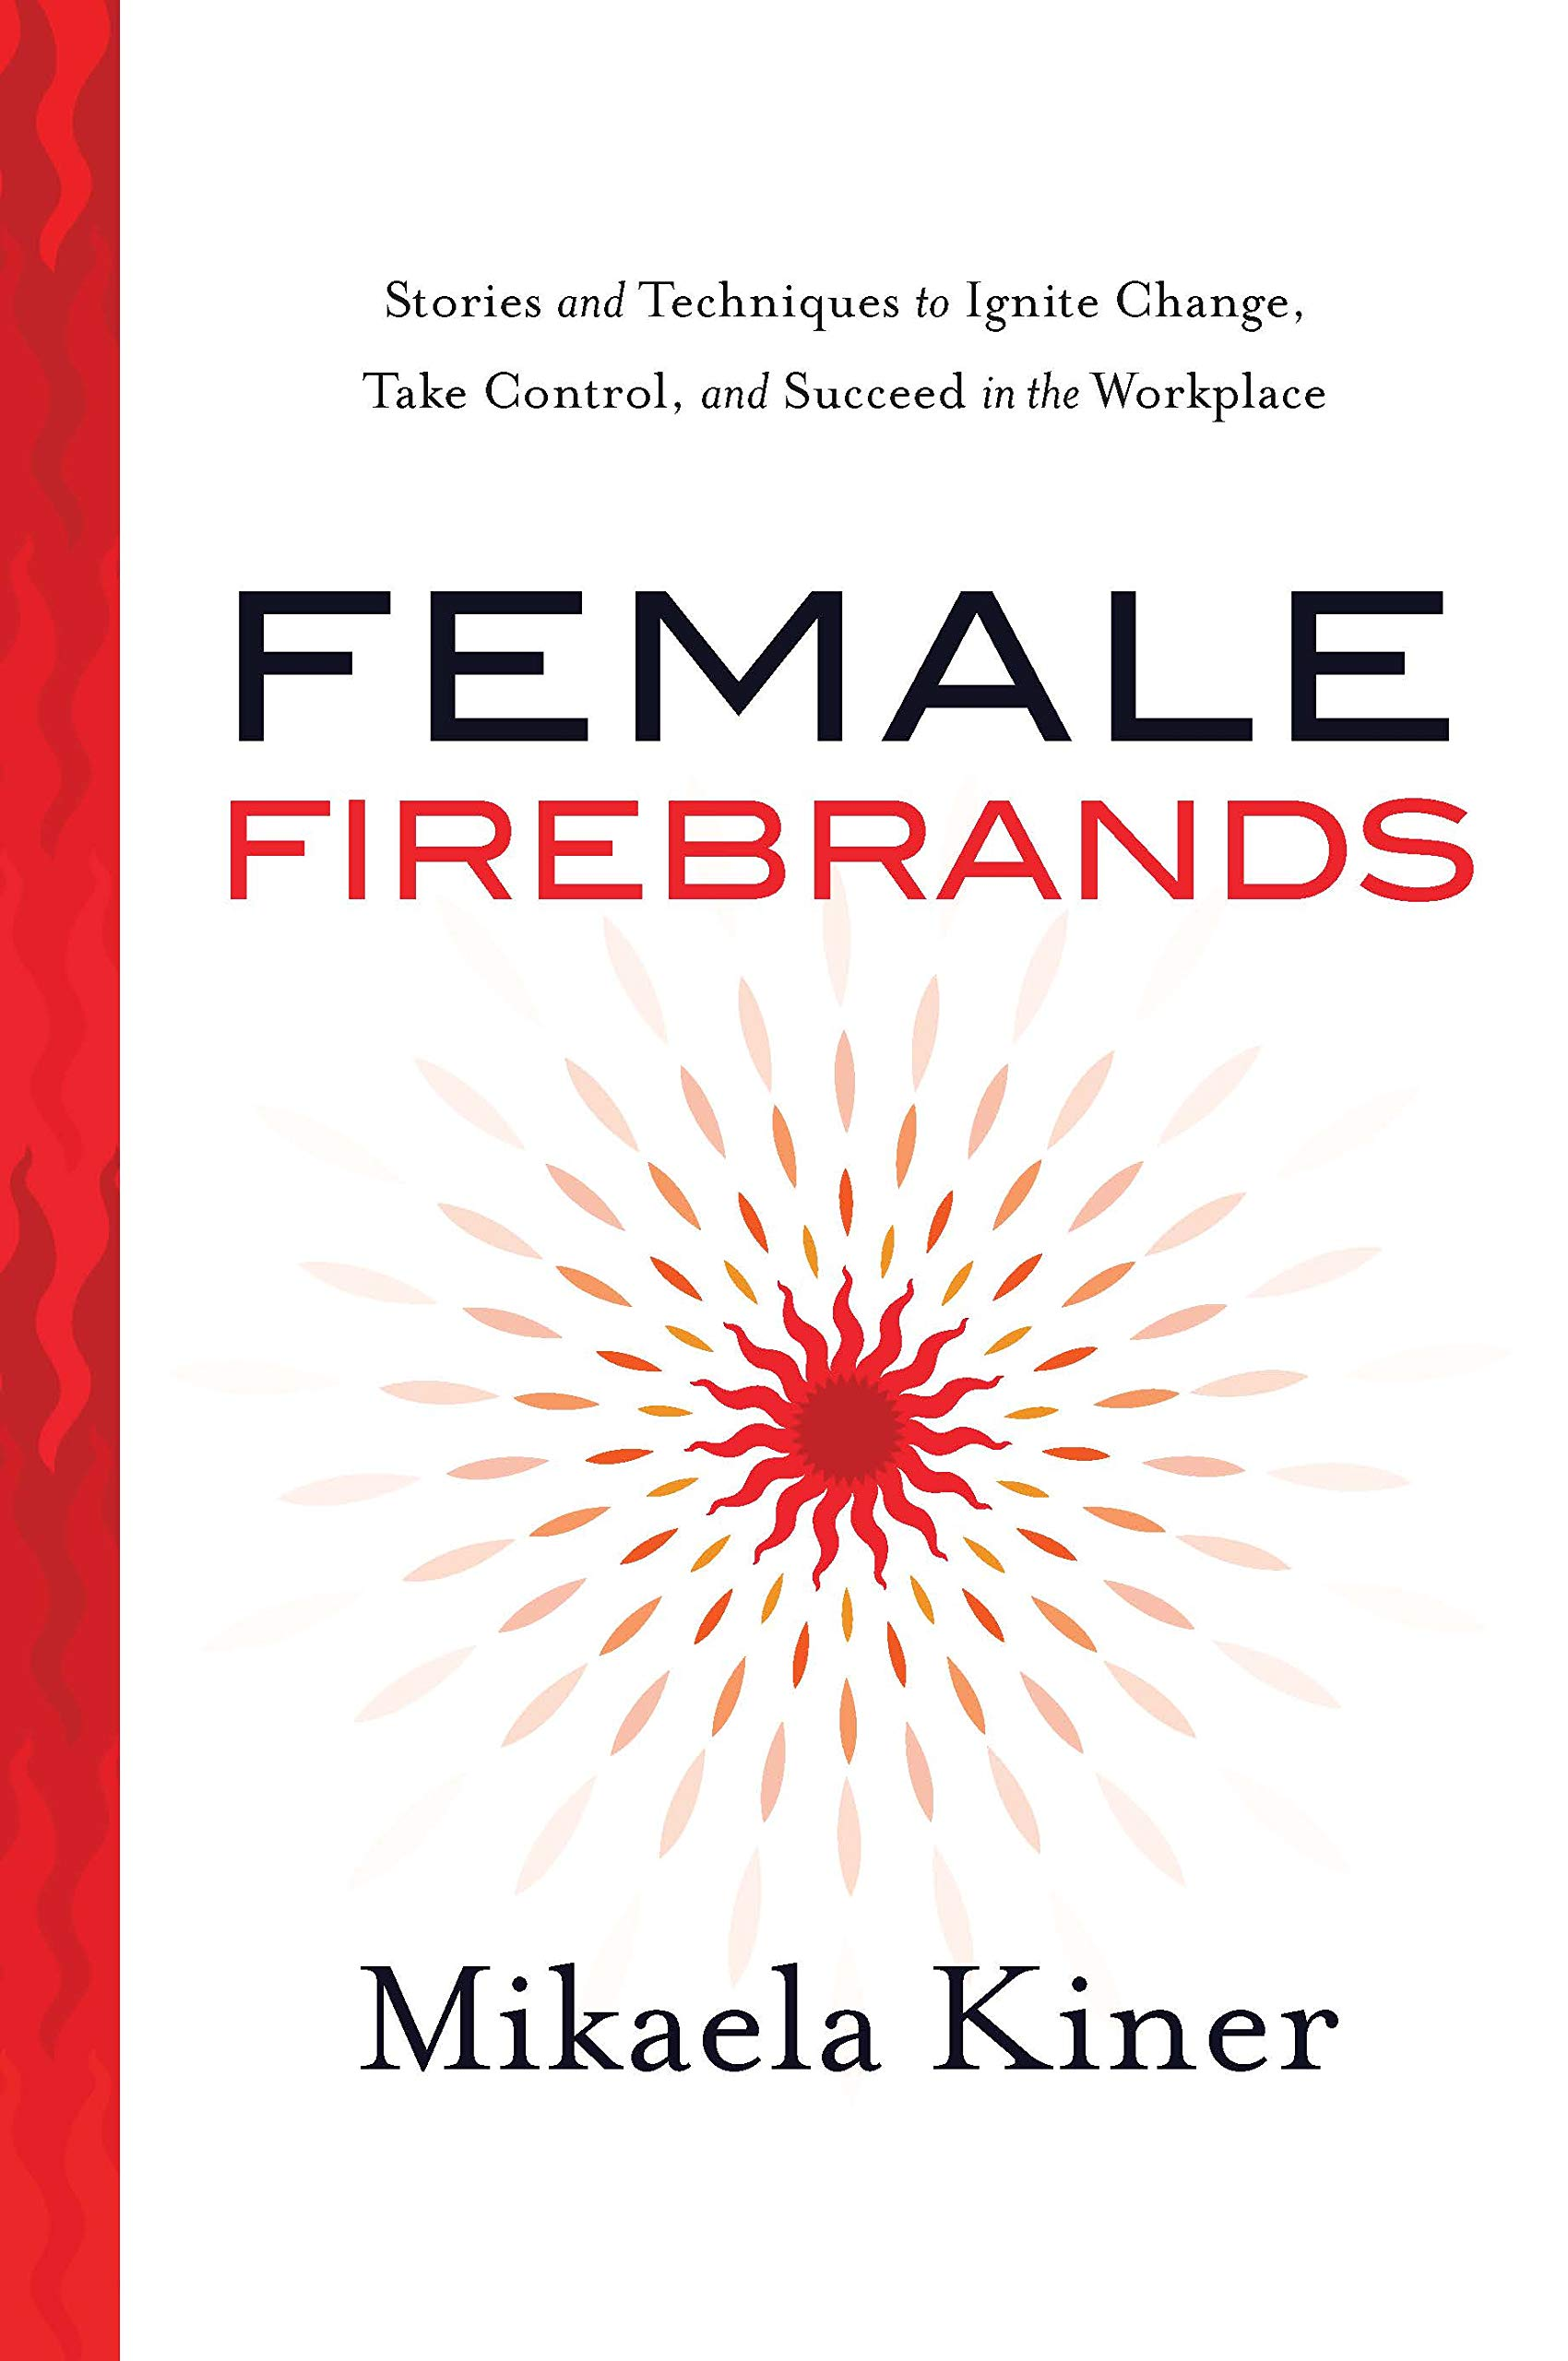 Image OfFemale Firebrands: Stories And Techniques To Ignite Change, Take Control, And Succeed In The Workplace